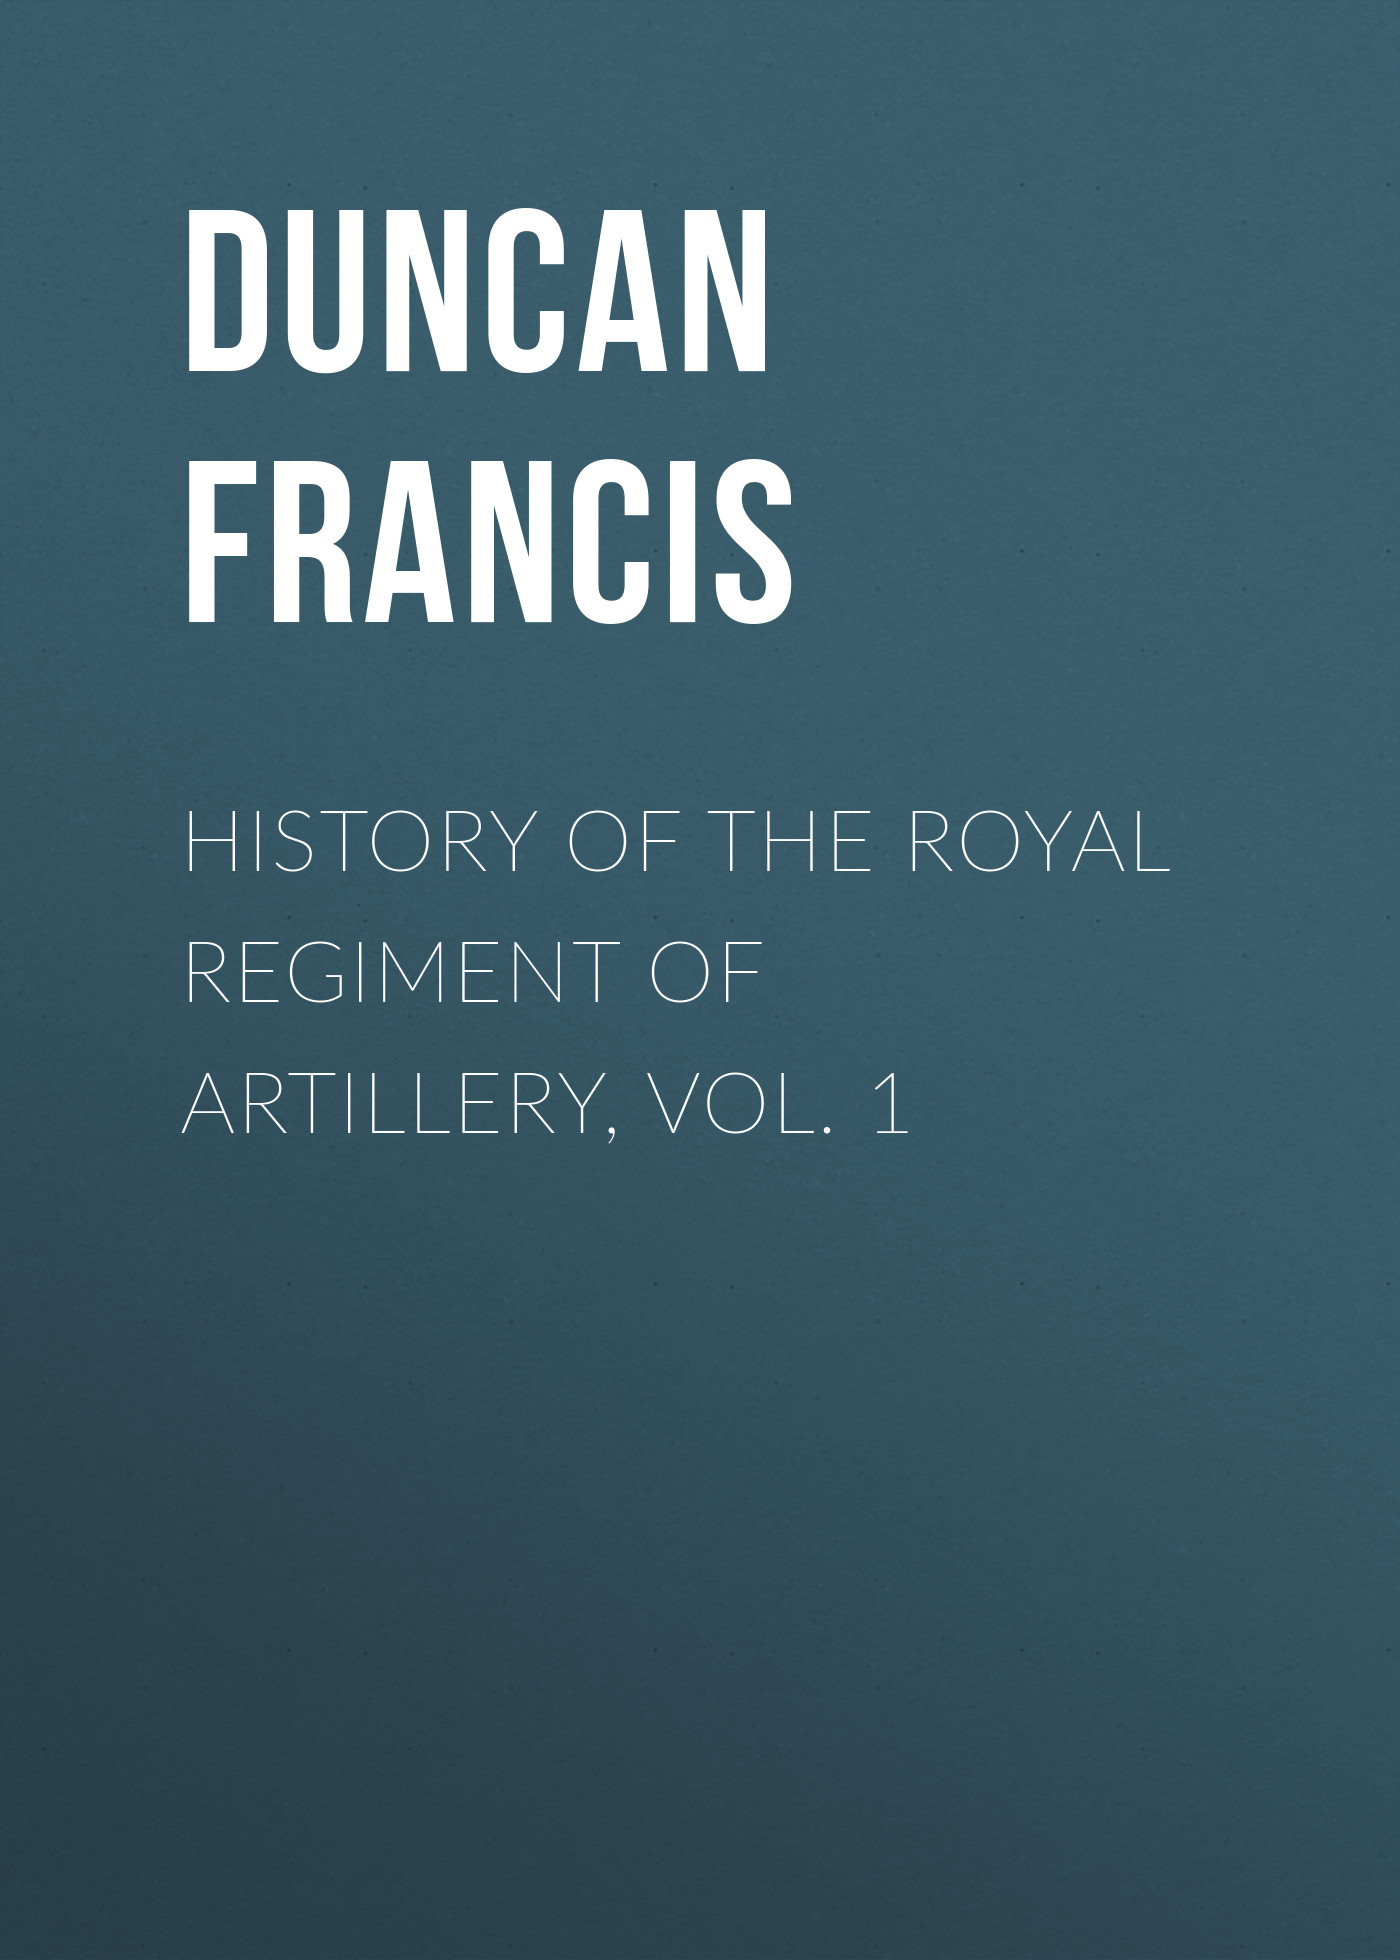 Duncan Francis History of the Royal Regiment of Artillery, Vol. 1